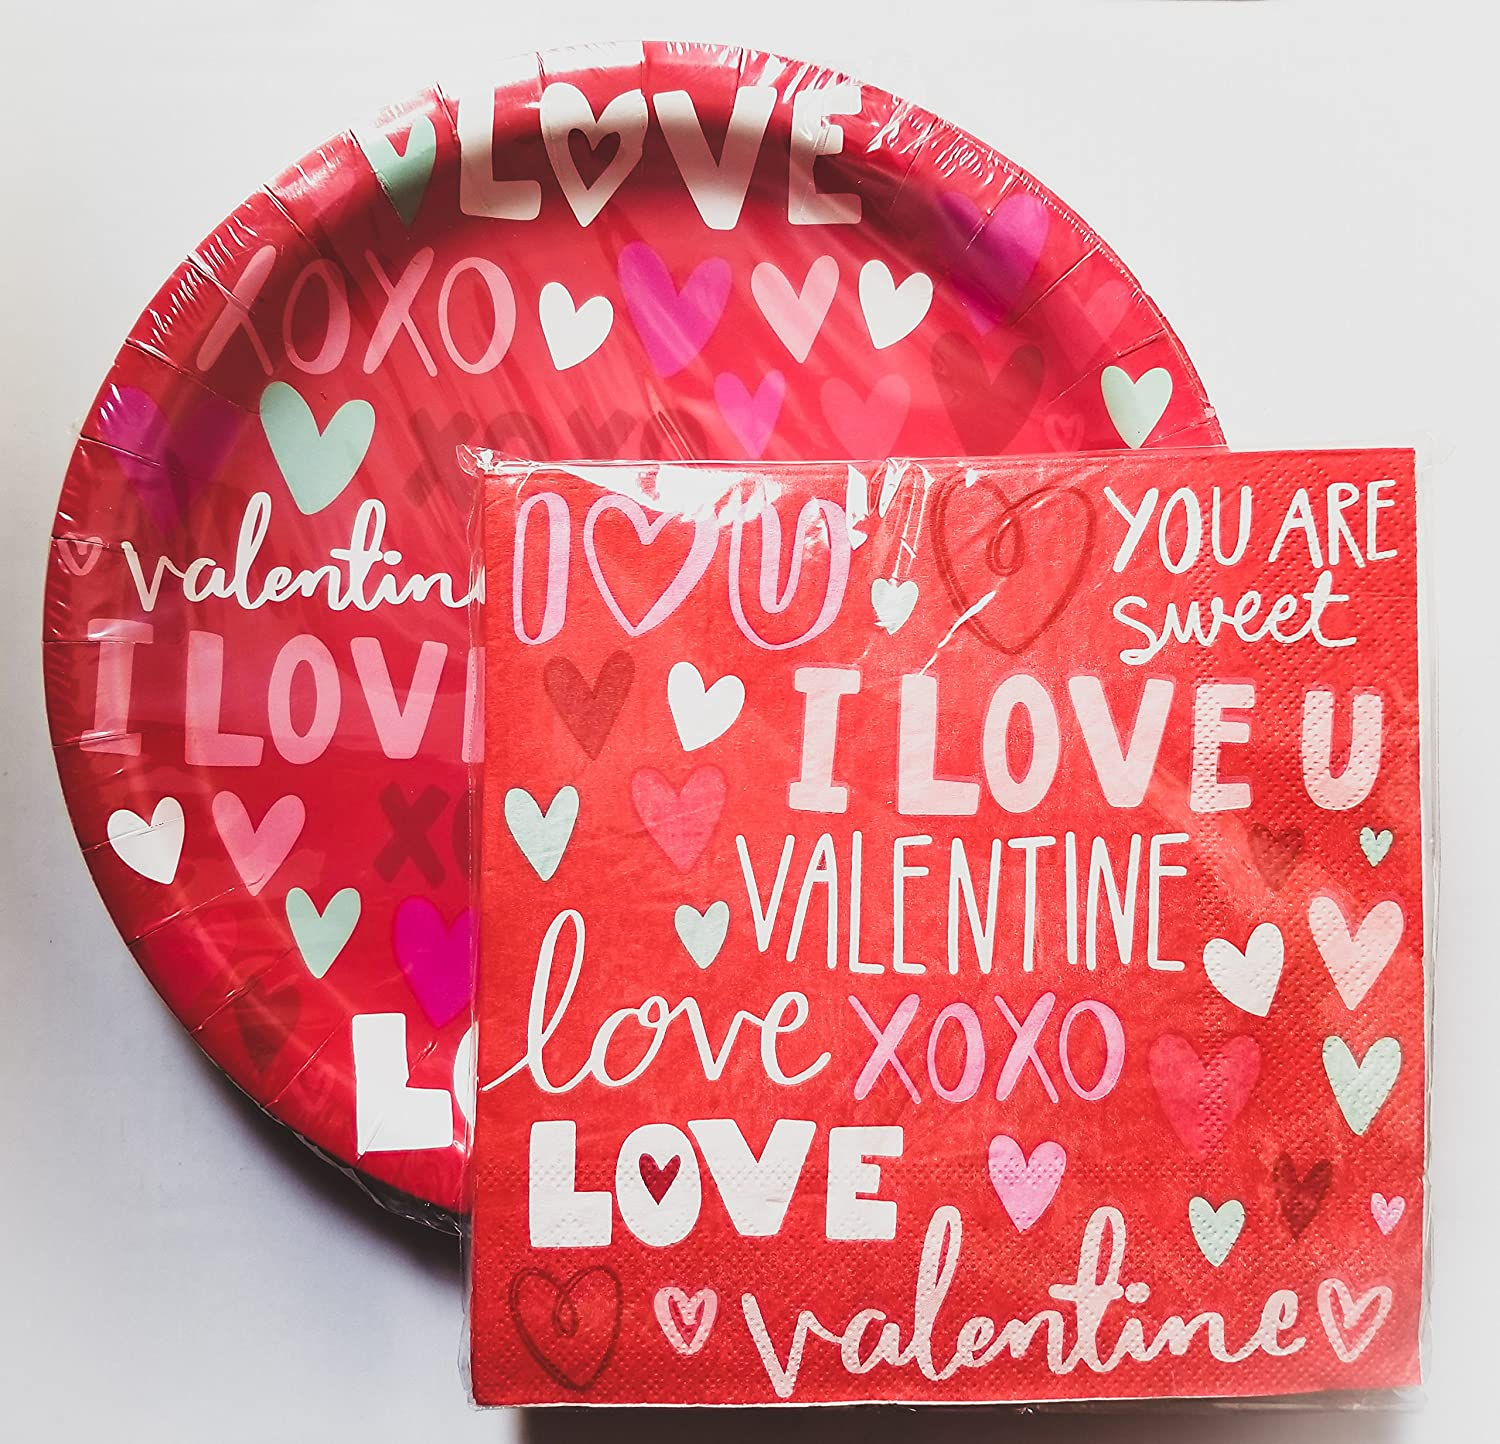 "Red Valentine's Day Paper Plates & Napkins - Party Supplies for 18 Guests (""I LOVE U VALENTINE"")"